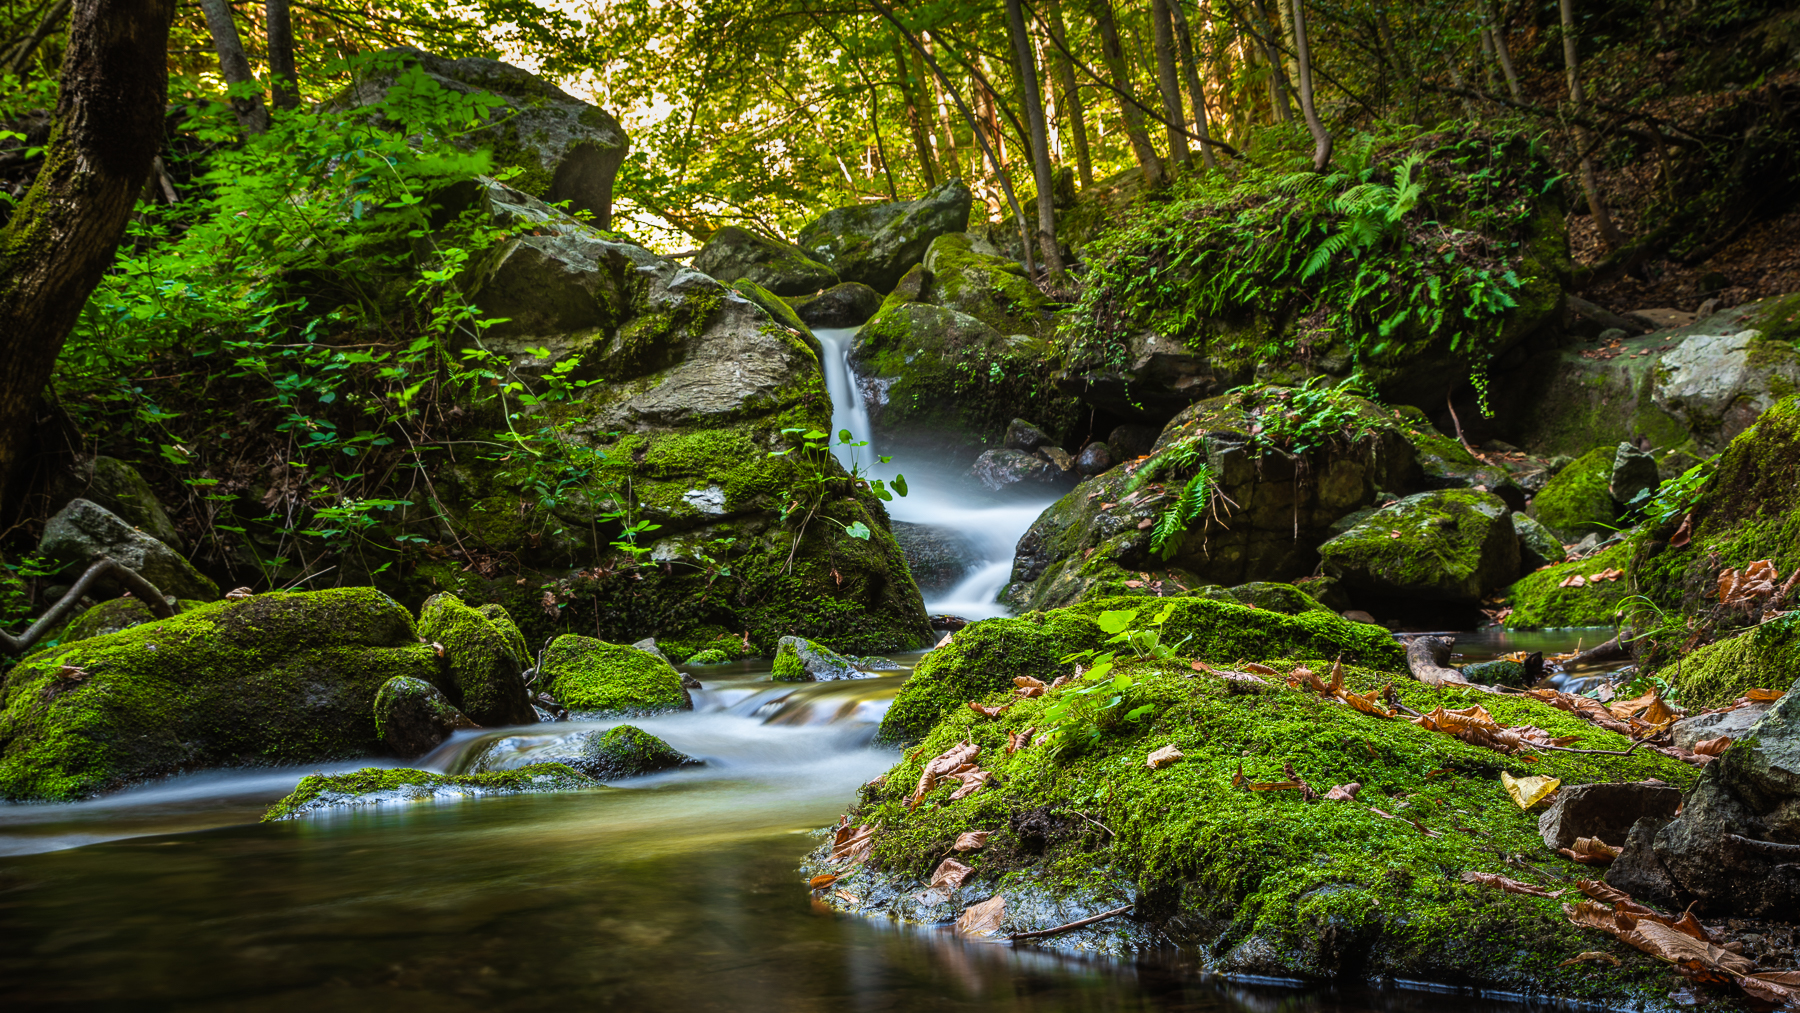 Pyrenees: Deep in the forest, France